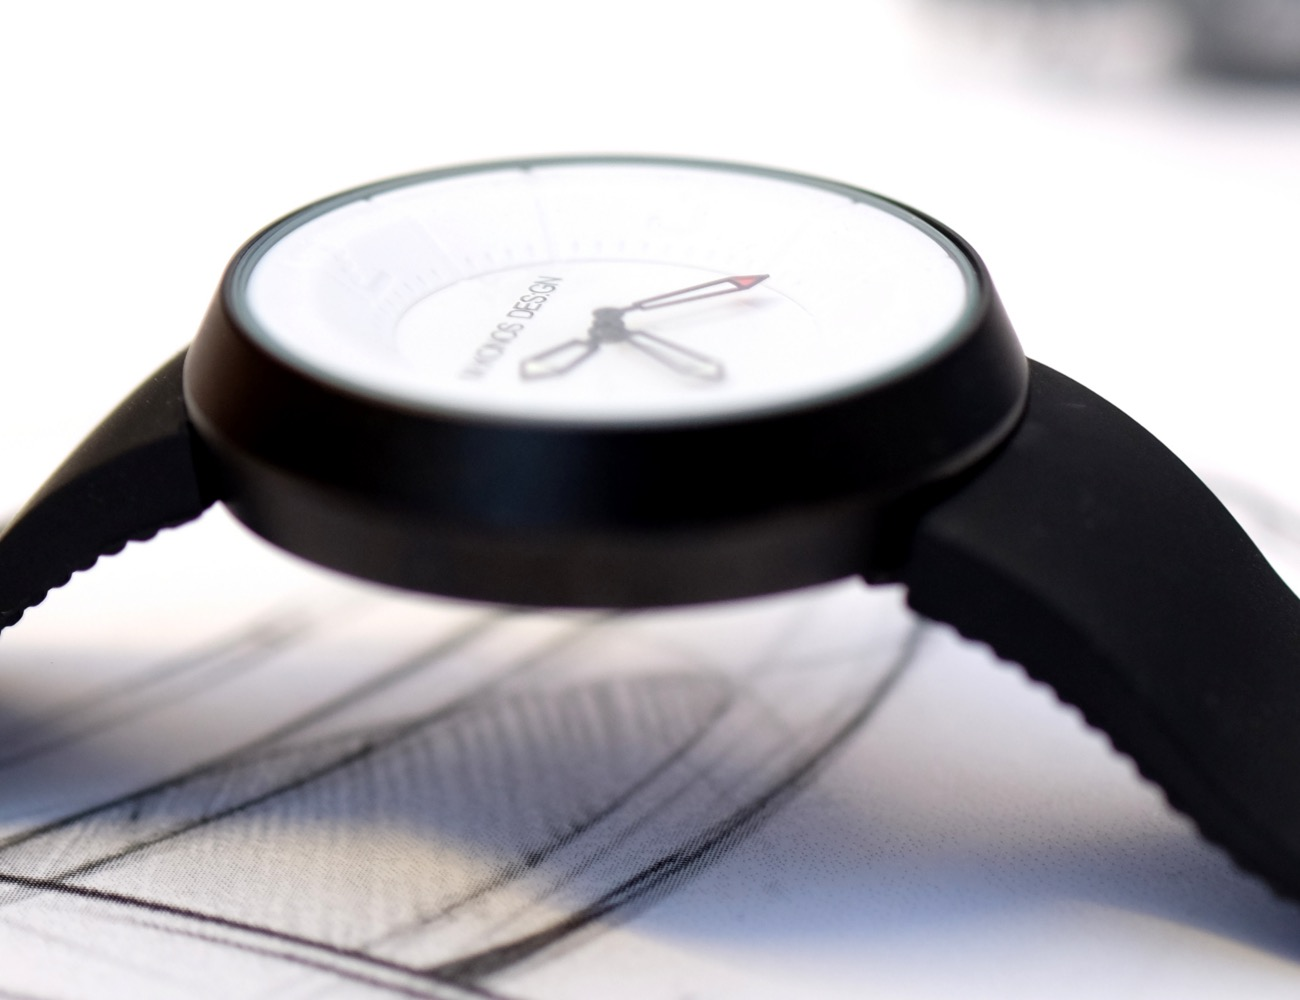 Cool and Design Watch Inspired by Supercar